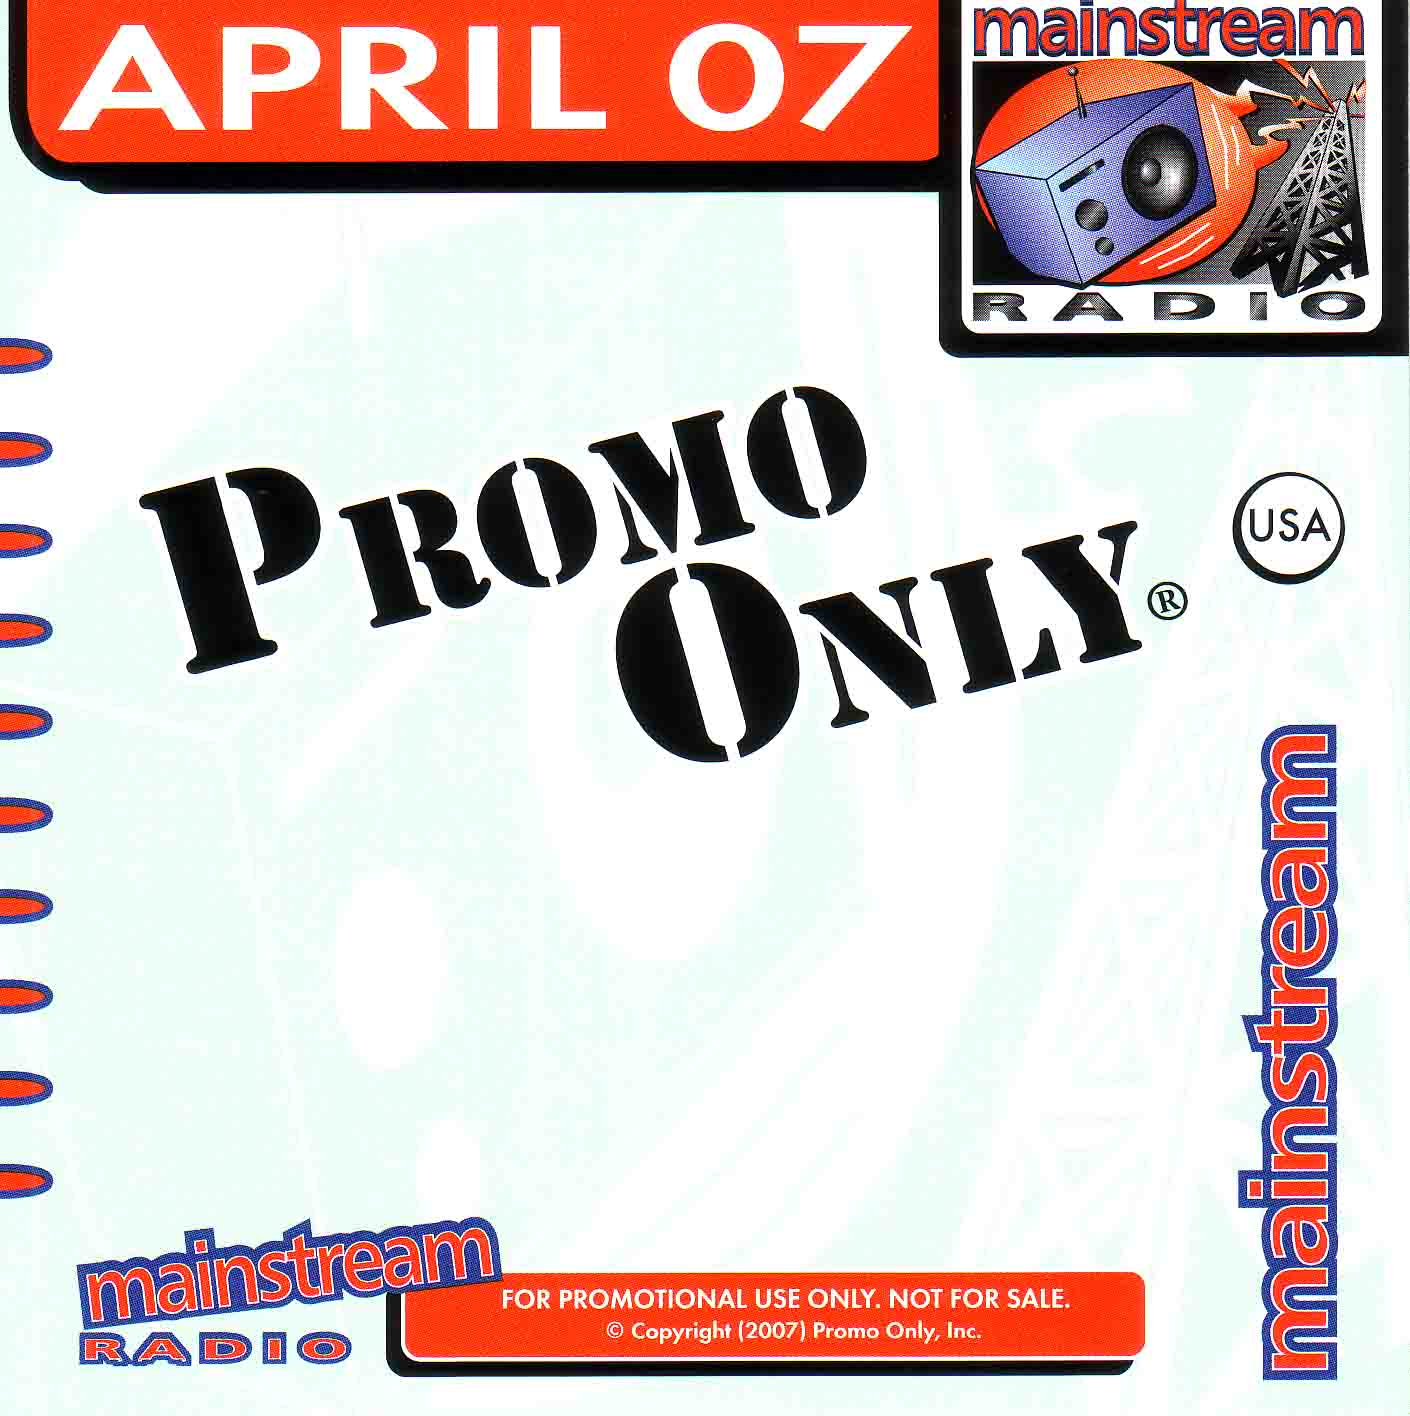 http://1.bp.blogspot.com/_9cw-jhhRBE4/TL8rtfFaXuI/AAAAAAAAF9k/g-R2BDP3V68/s1600/00-va-promo_only_mainstream_radio_april-2007-front.jpg